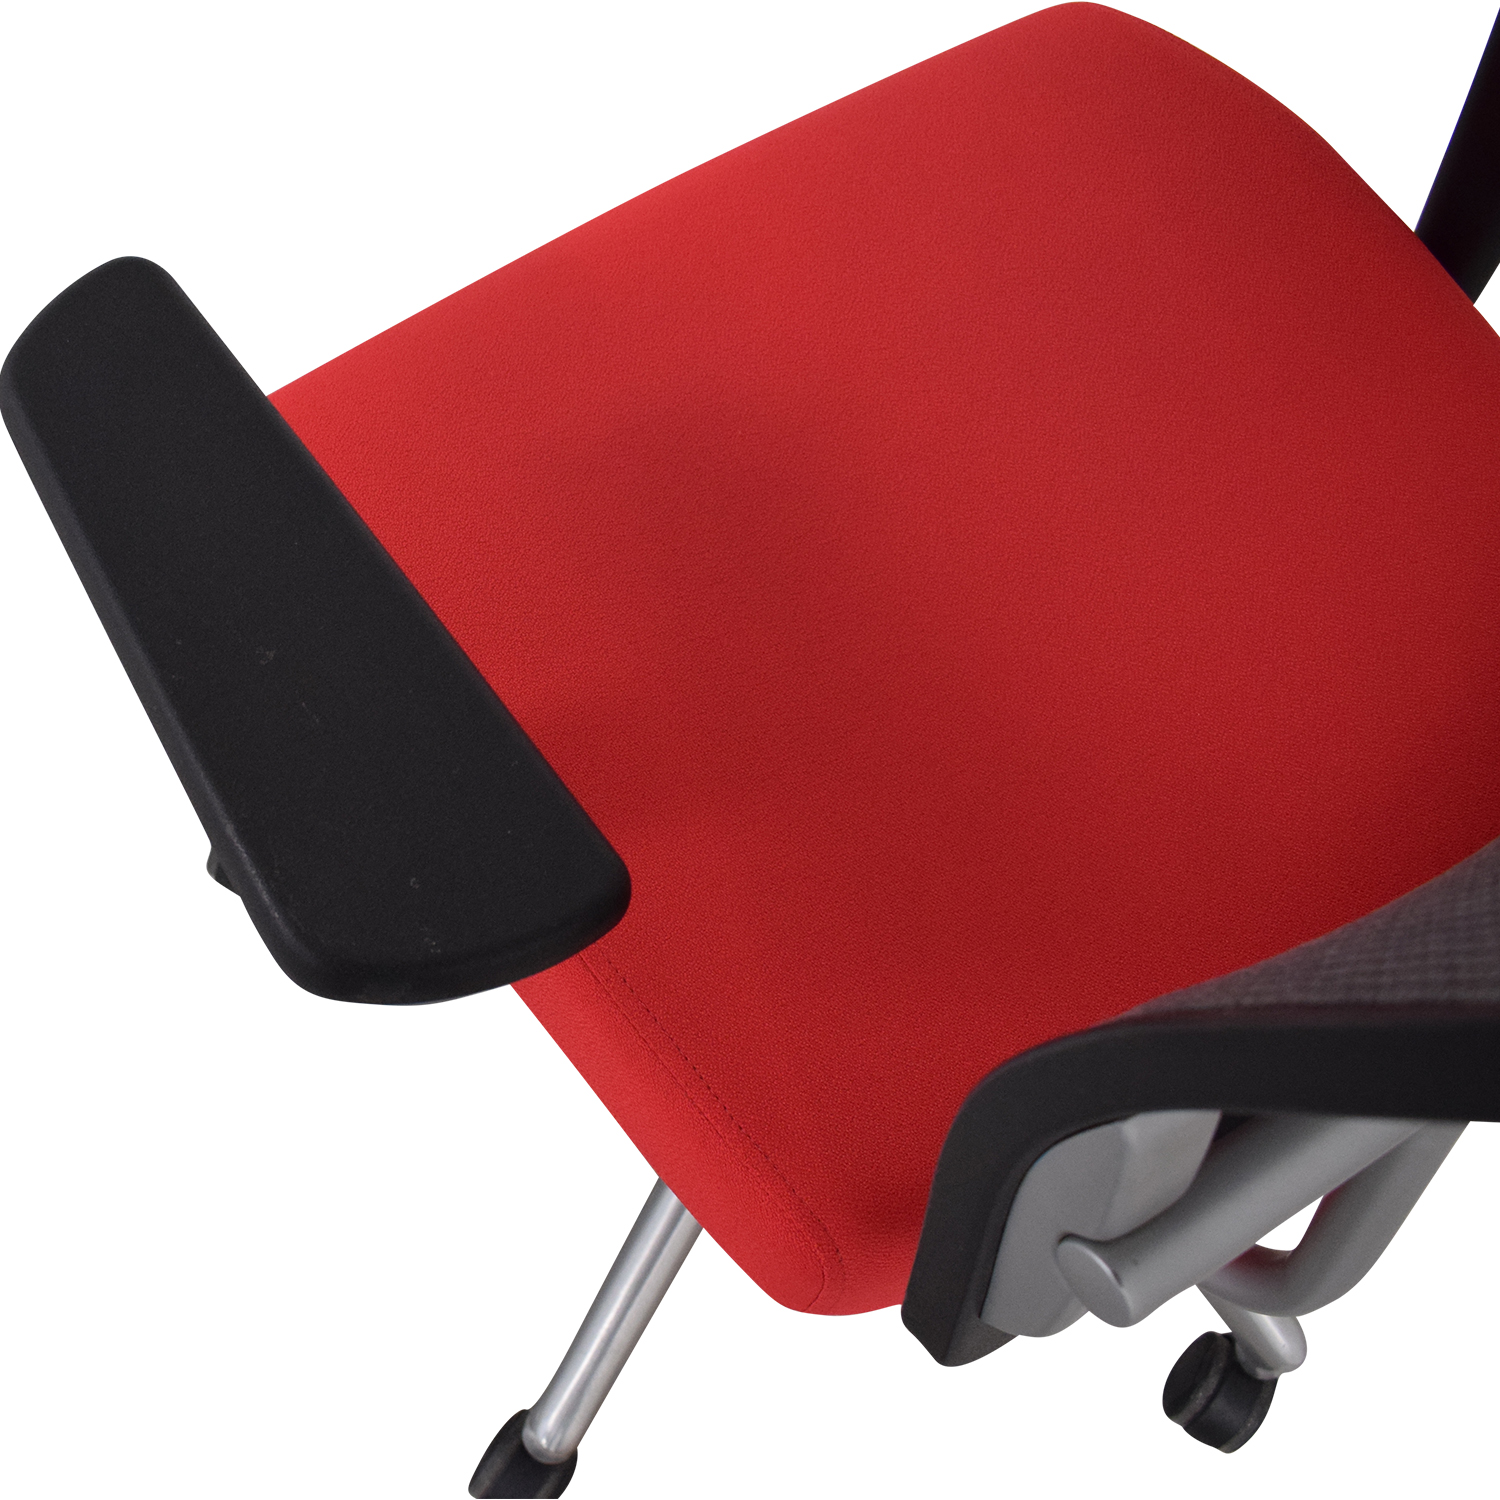 SitOnIt SitOnIt Focus High Back Office Chair price